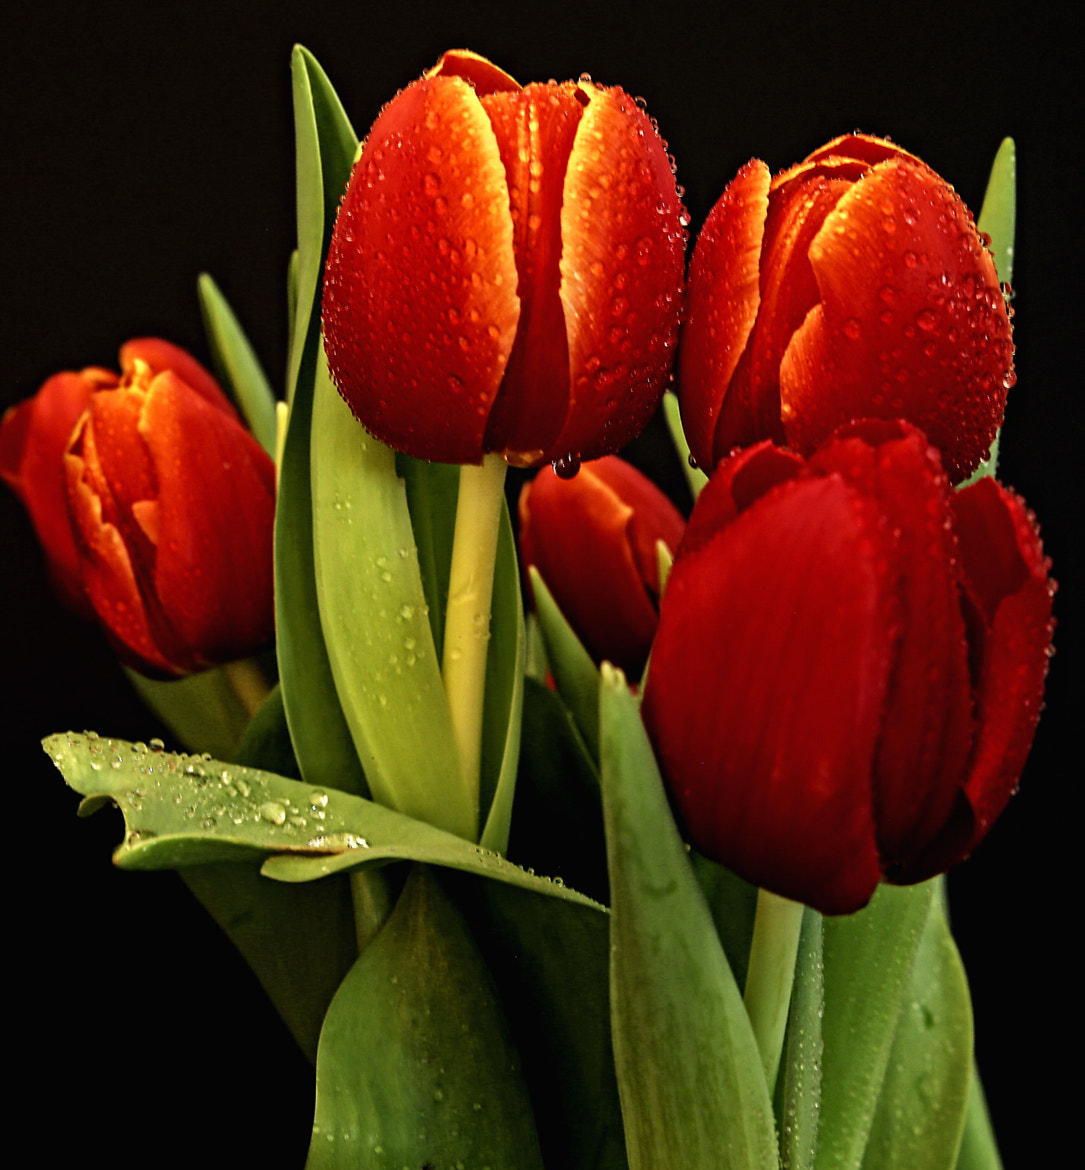 Photograph Tulips by Cris T on 500px